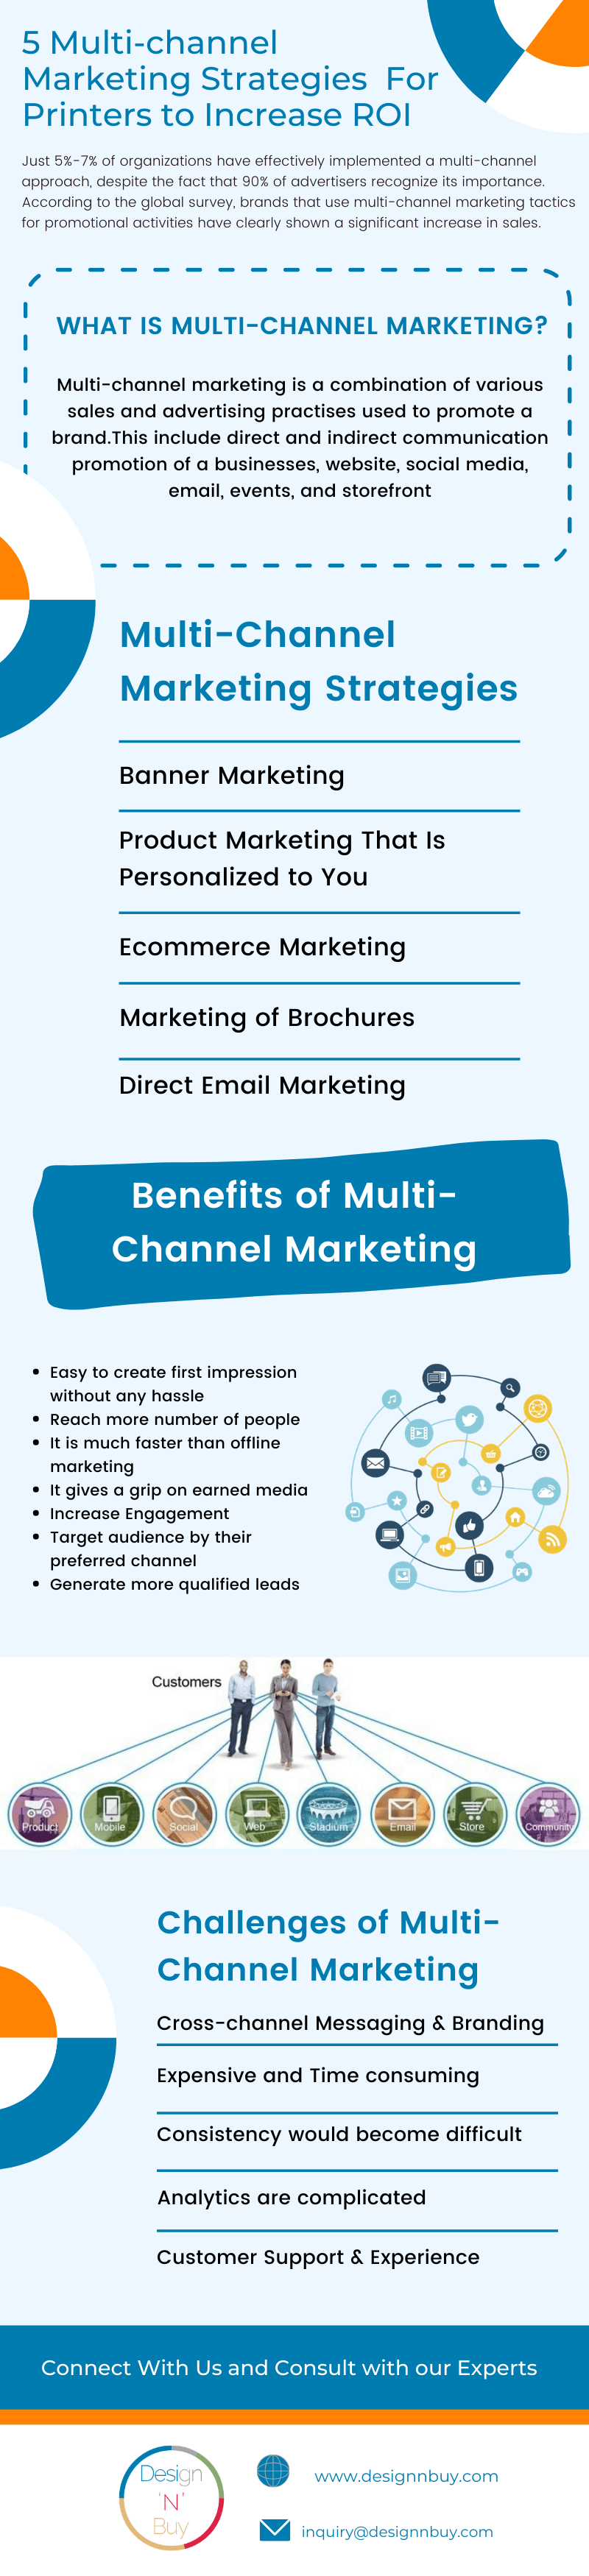 Multi-channel Marketing Platforms For Printers to Increase ROI (3)